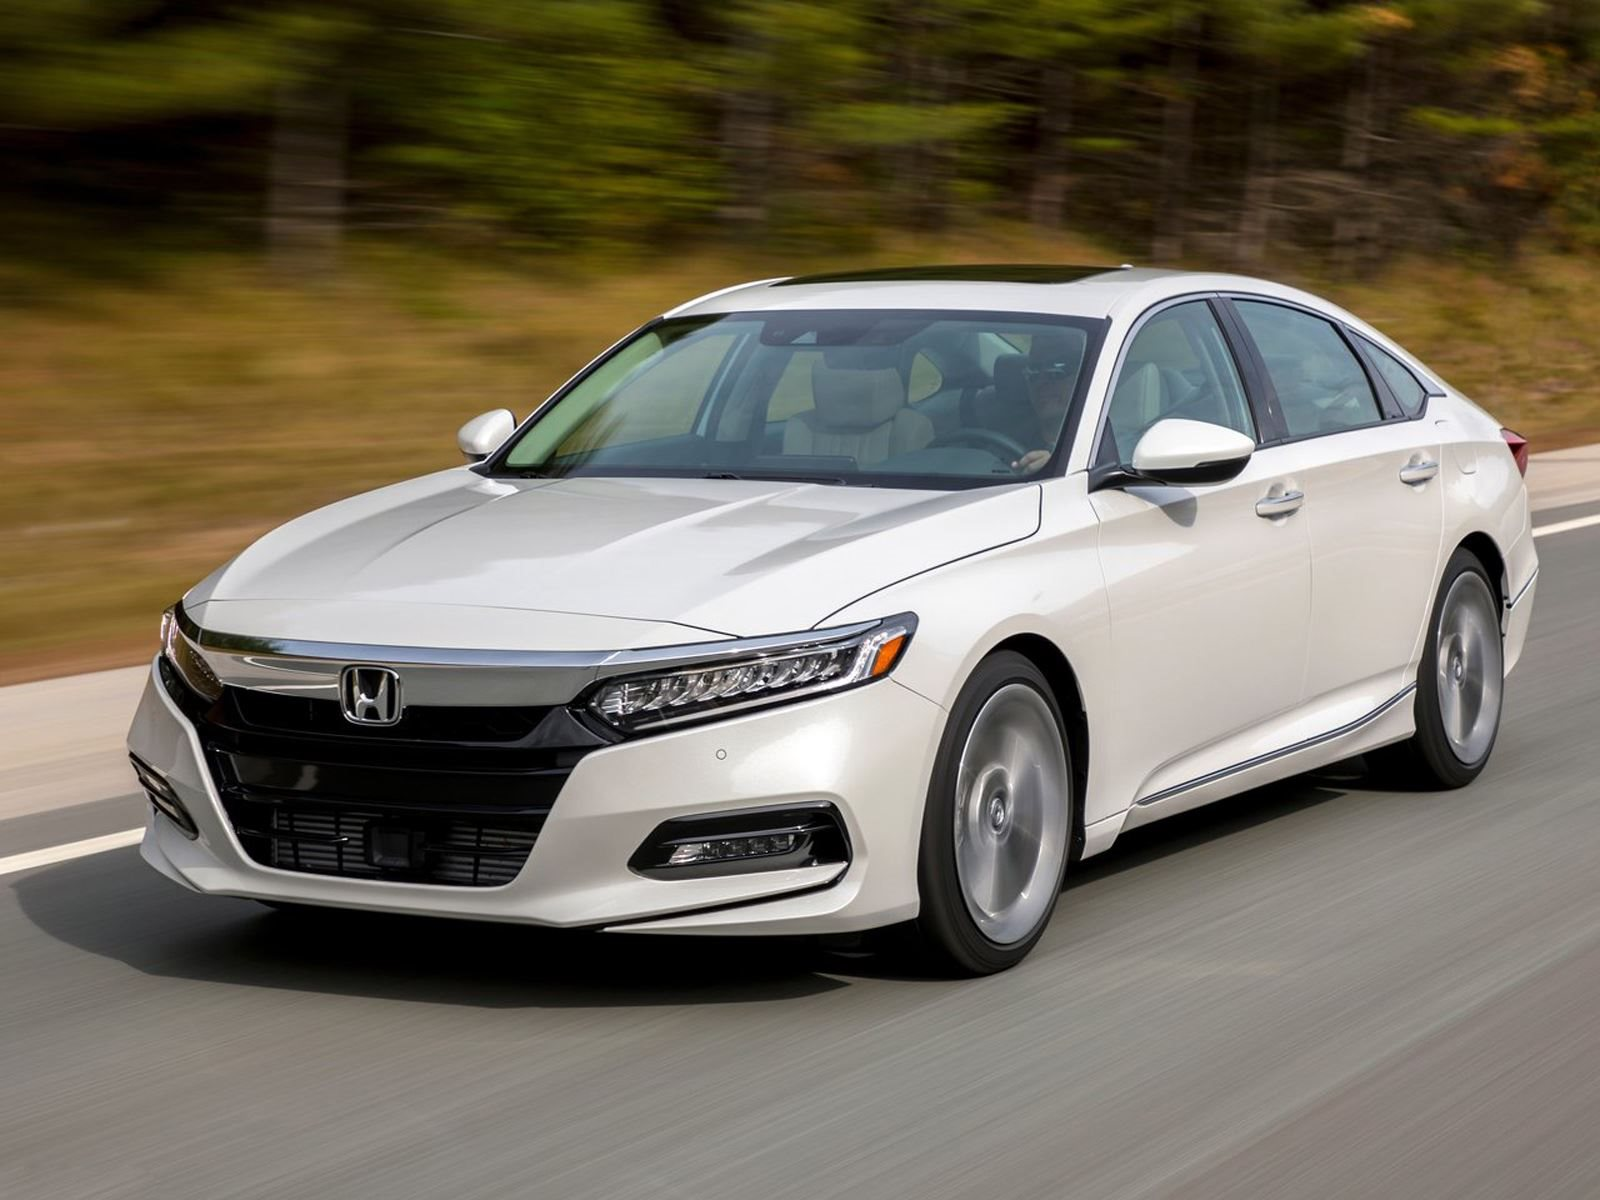 Honda Crosstour Lowered The Accord Is A Slow Seller So Dealers Are Asking For Help Carbuzz